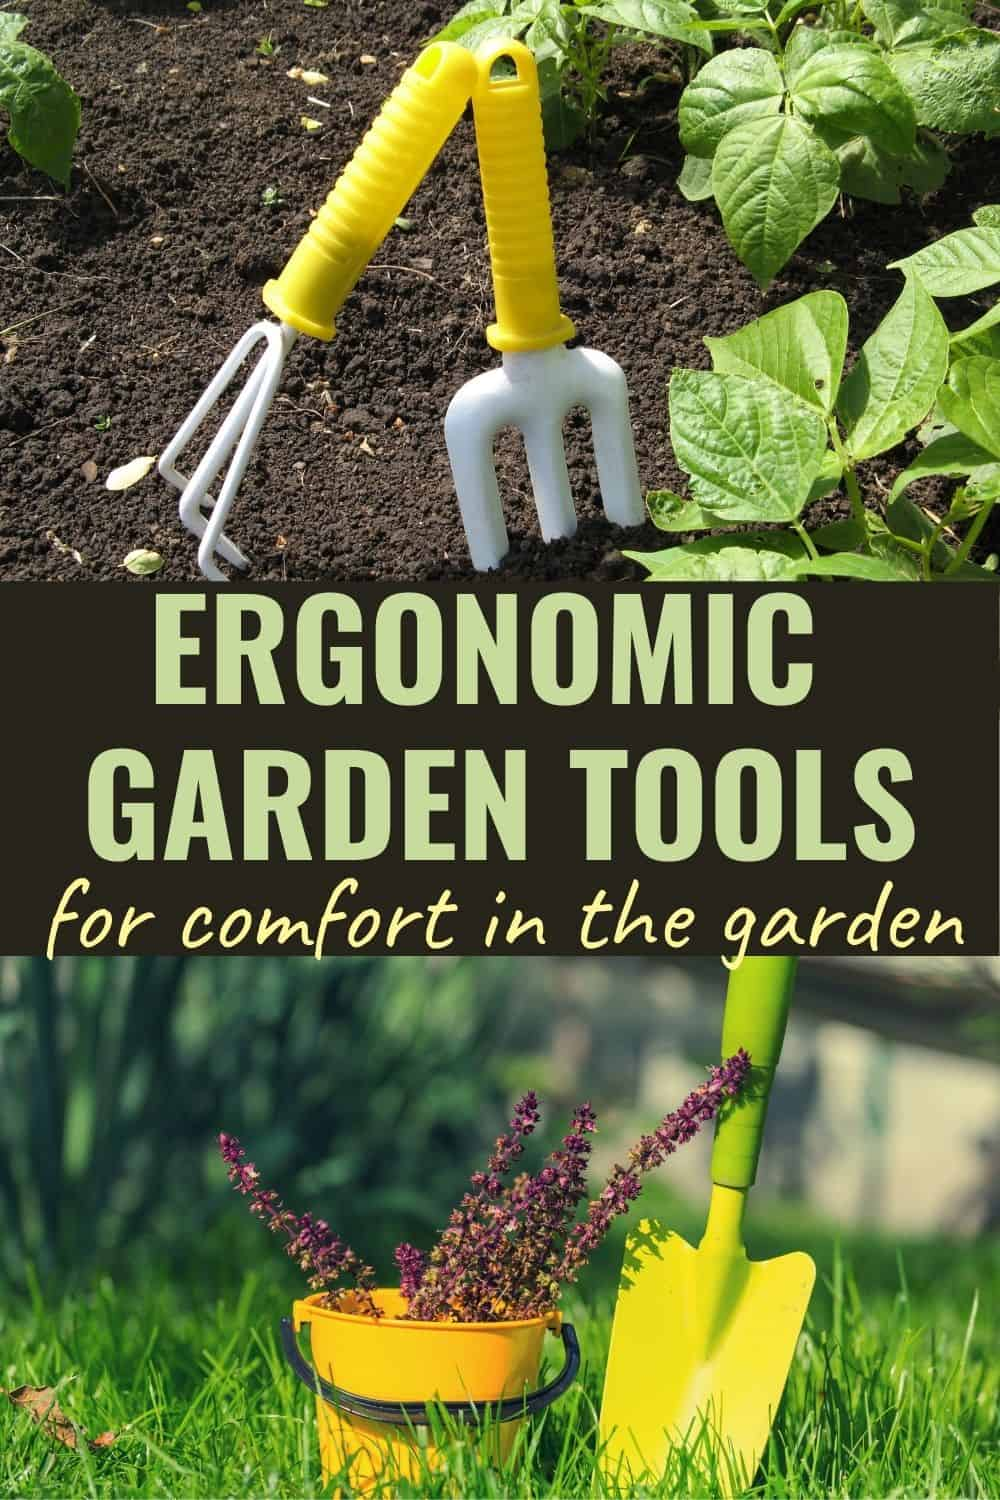 Ergonomic Radius garden tools for comfort in the garden